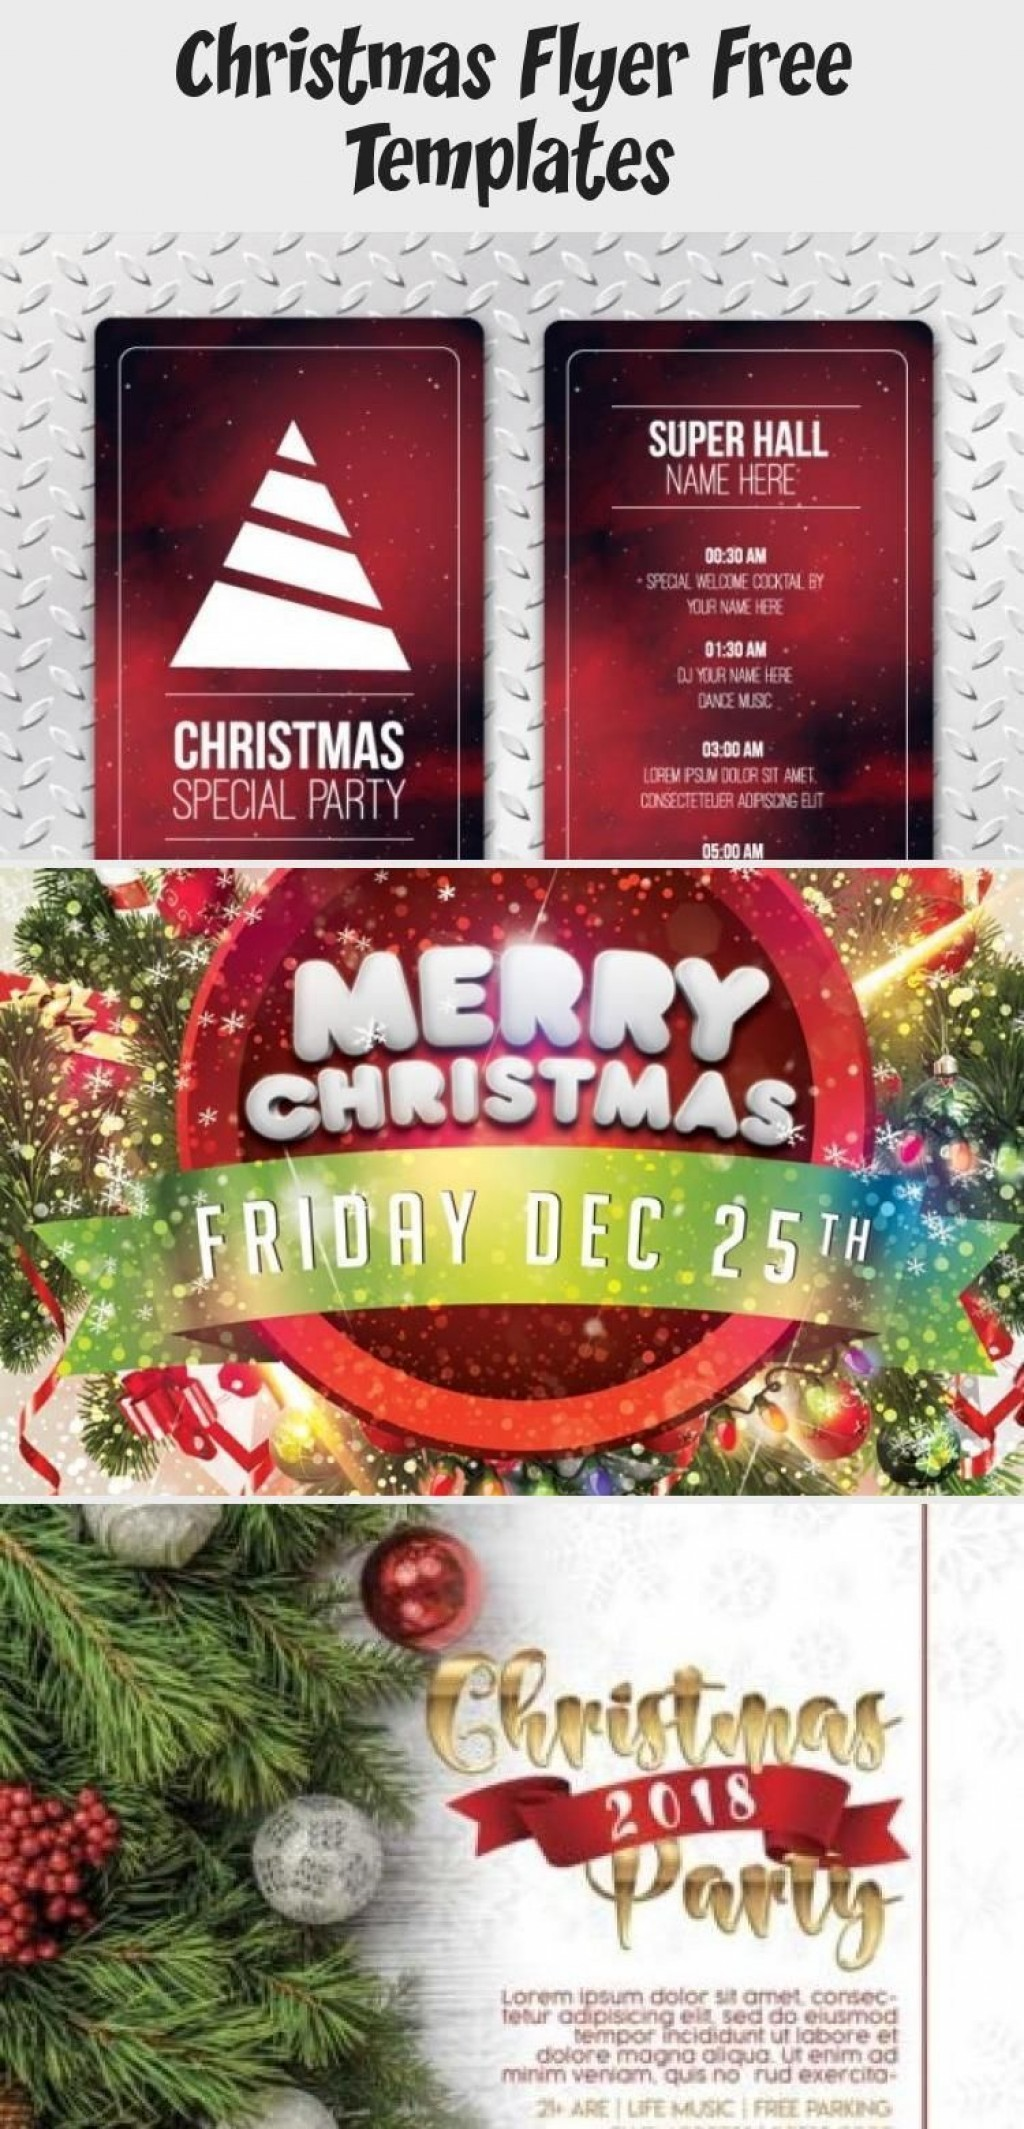 003 Marvelou Christma Flyer Template Free Picture  Party Invitation Psd DownloadLarge